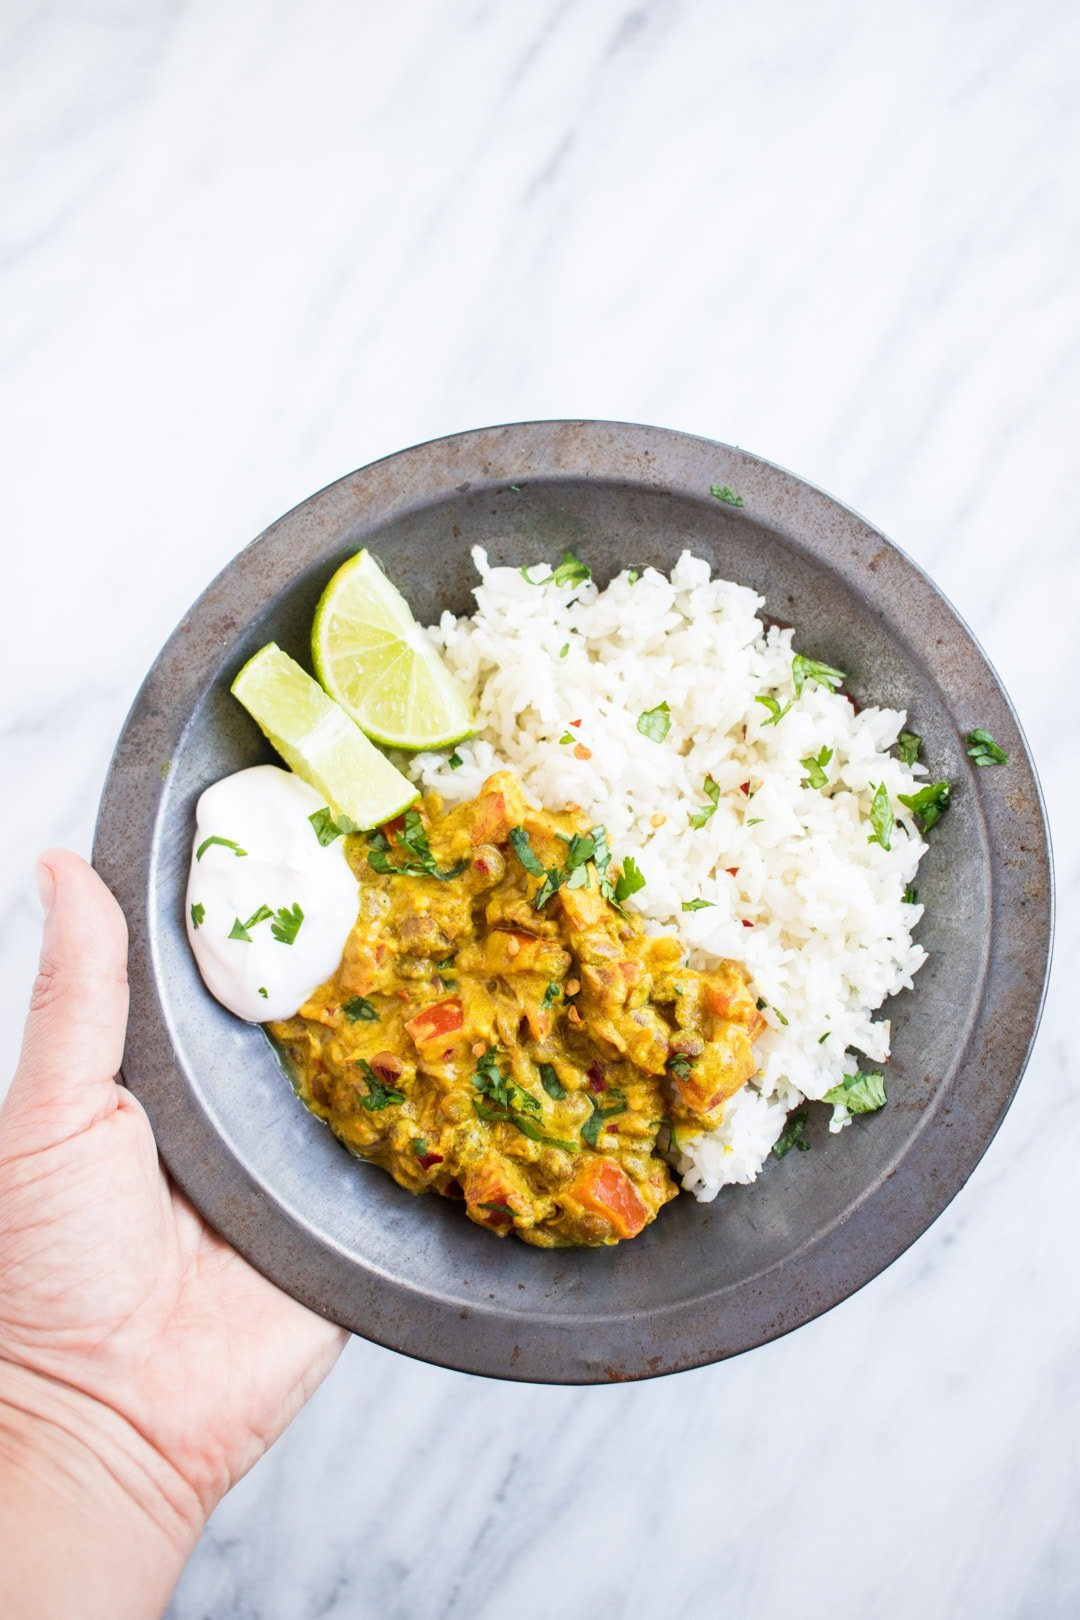 A hand holding a metal bowl filled with low FODMAP lentil dal and basmati rice garnished with cilantro and served with lime wedges and a dollop of coconut yogurt.